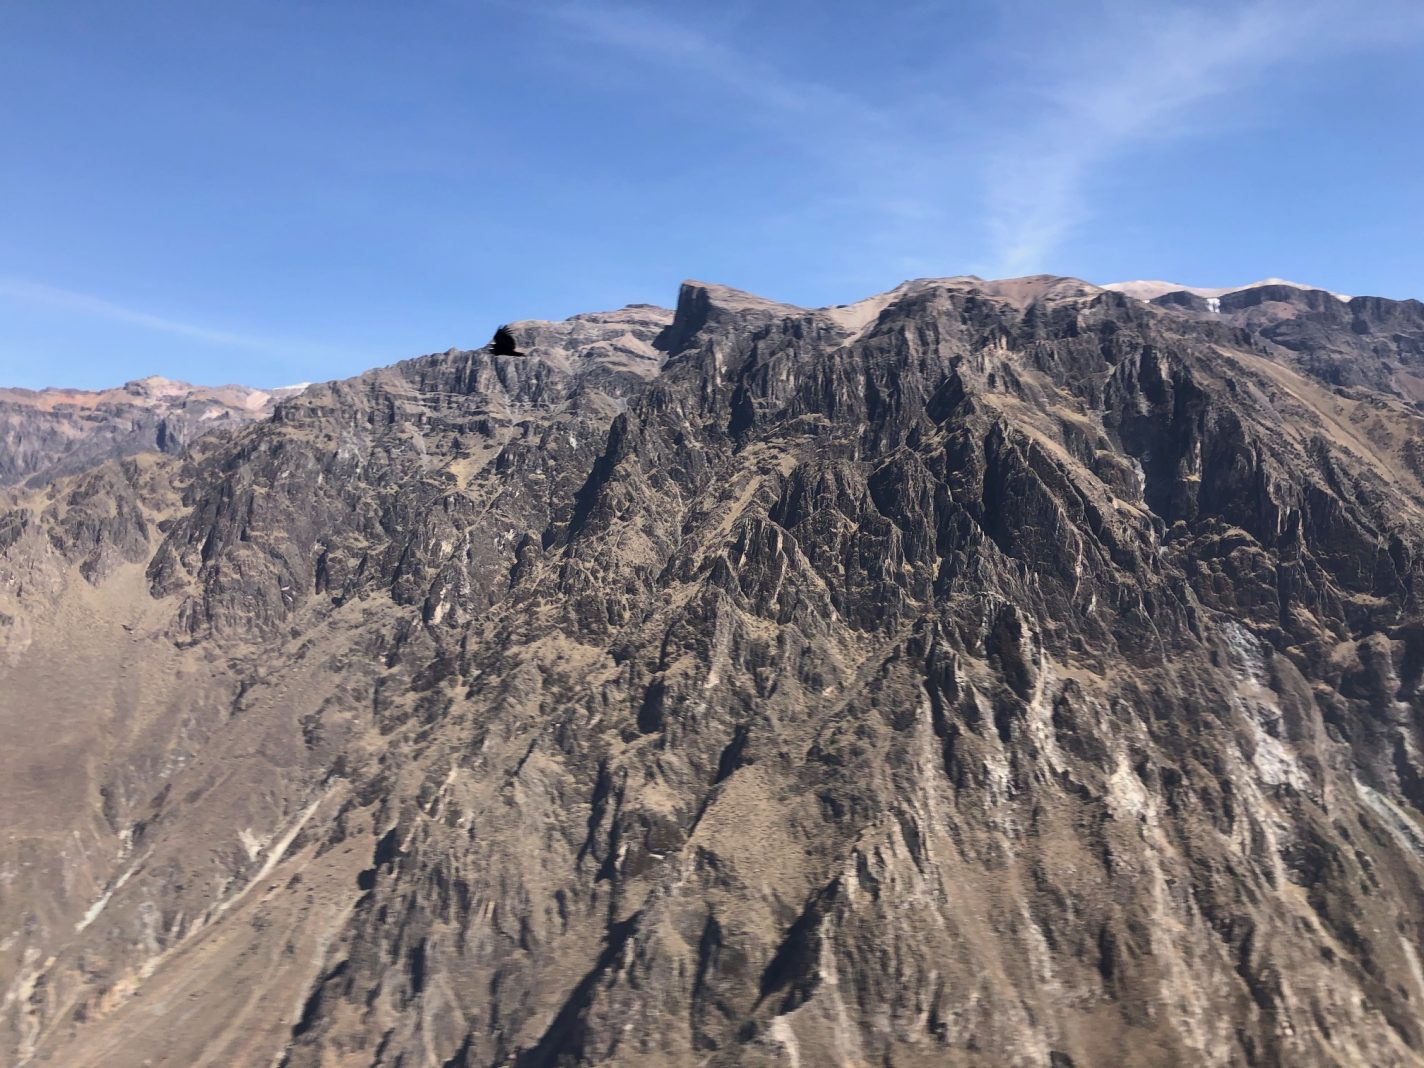 Colca Canyon - reisblog over Peru